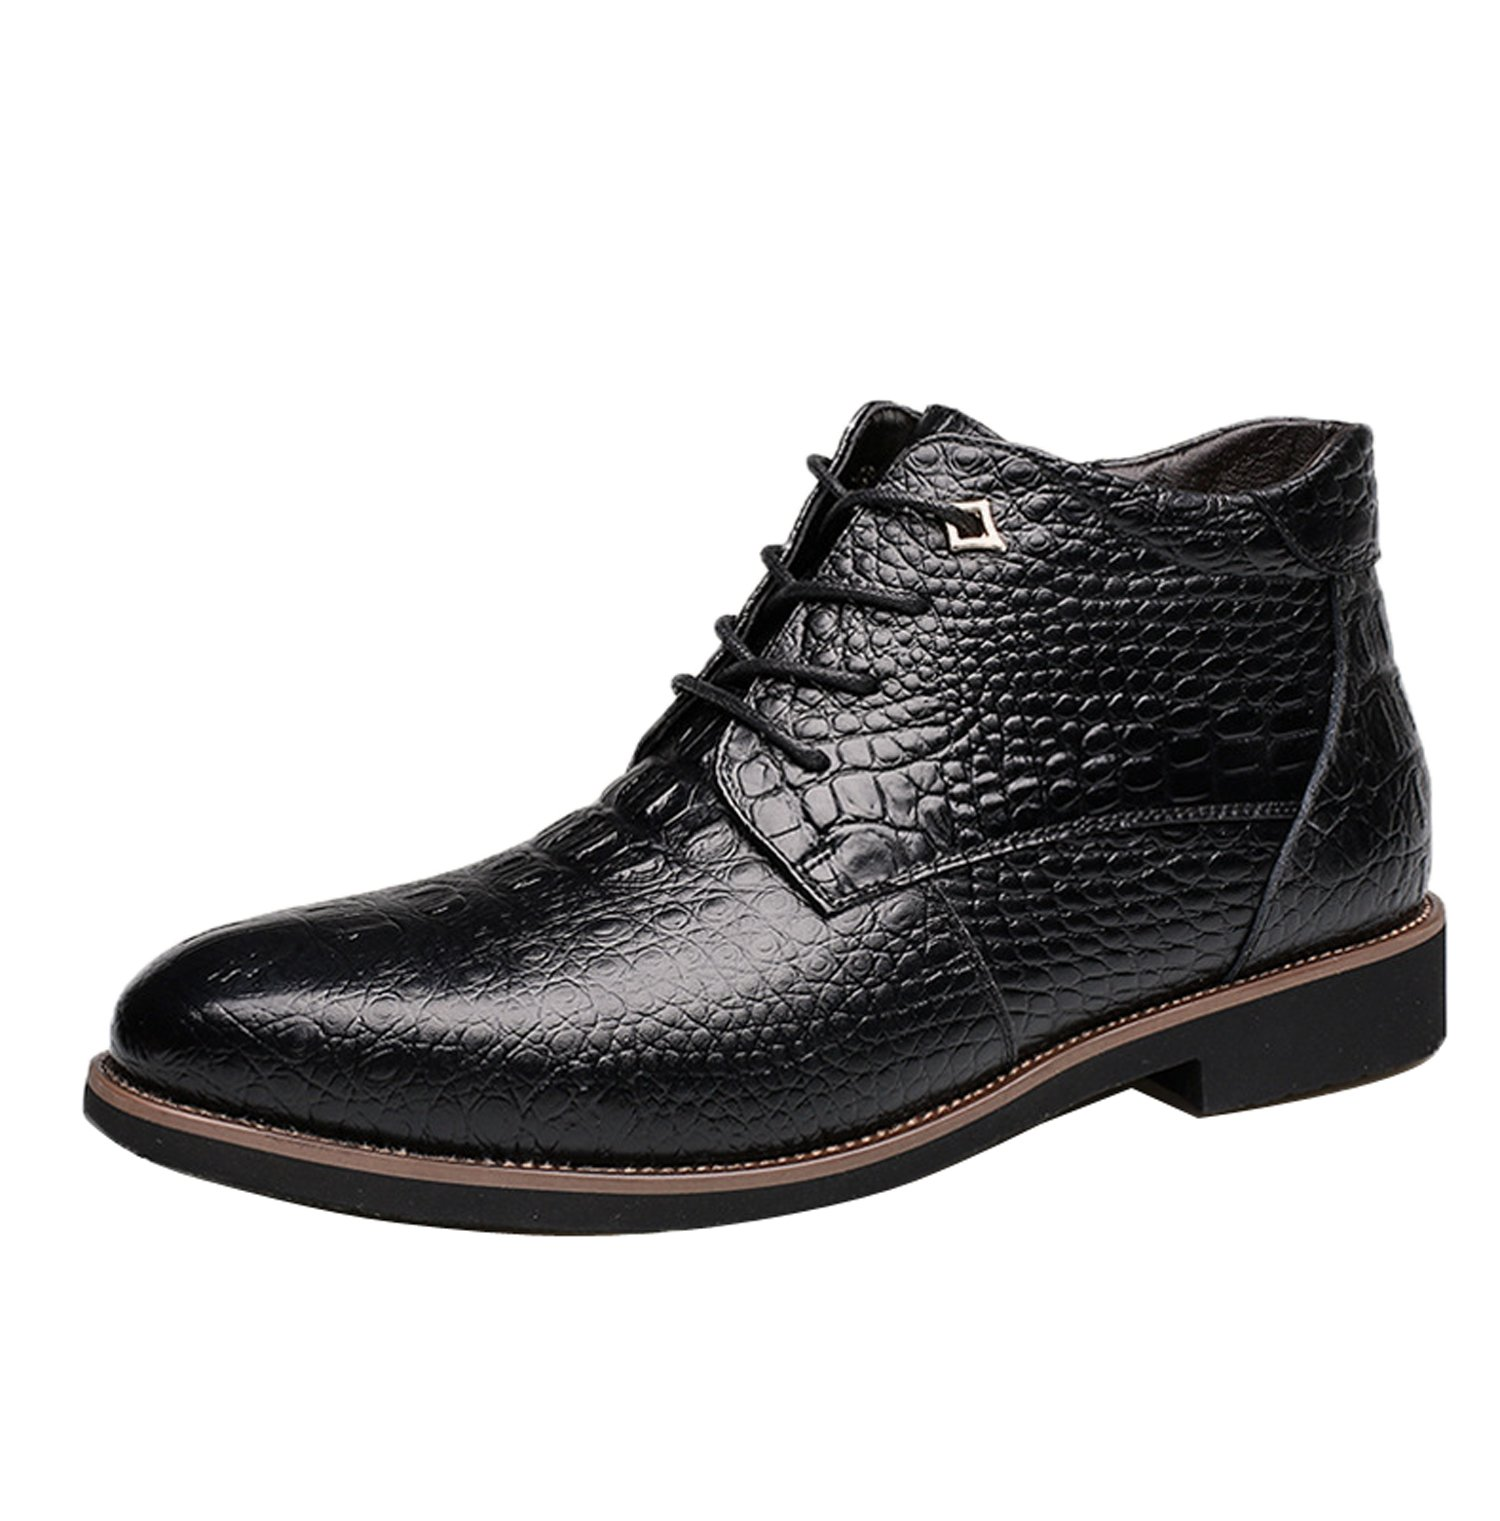 Gaorui Men Winter Warm Fur Lined Leather Snow Boot Alligator Business Dress Formal Shoe Black by Gaorui